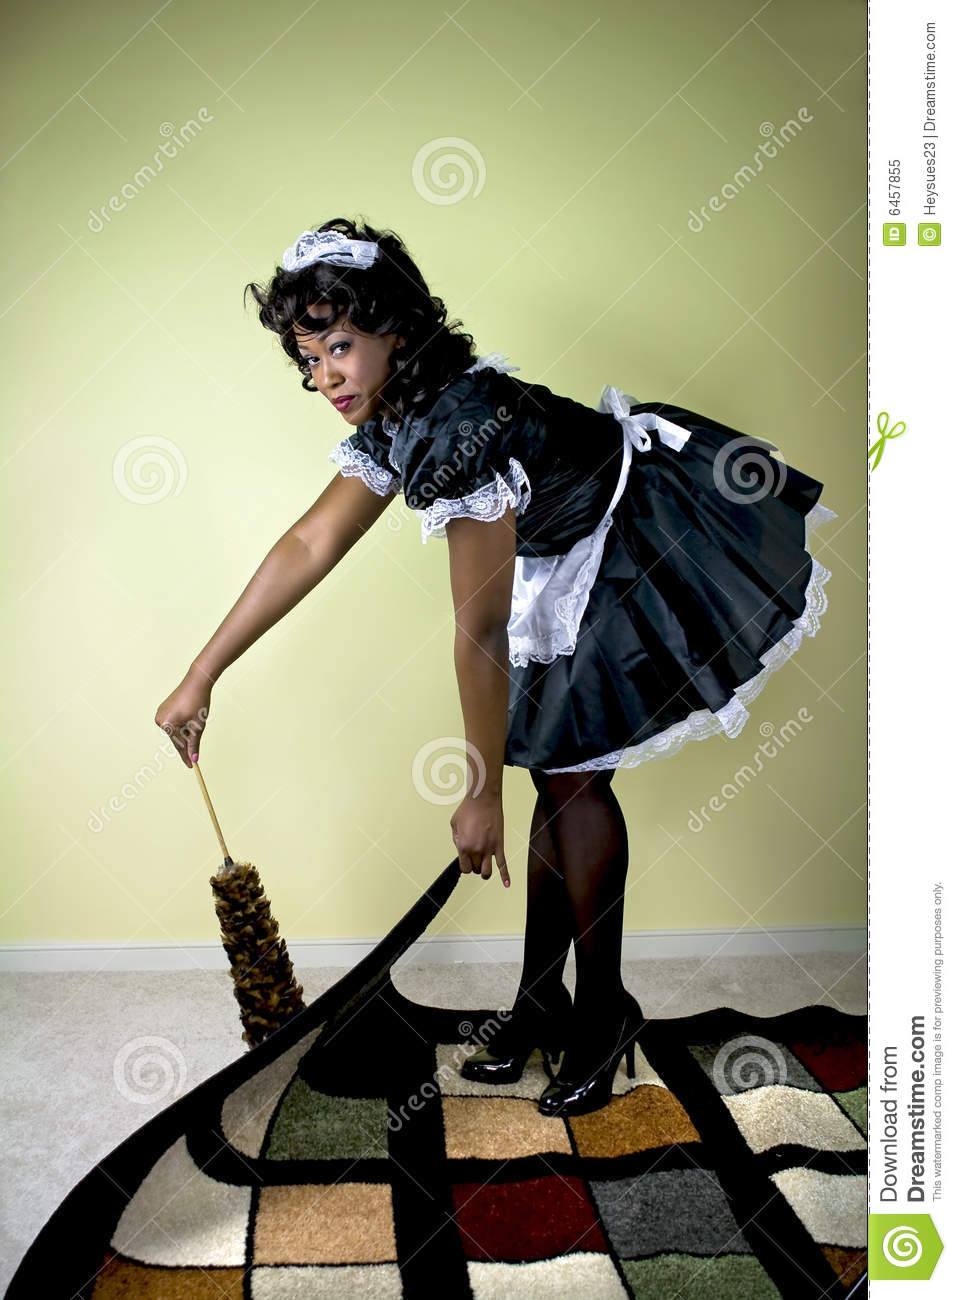 Maid Cleaning Royalty Free Stock Photo Image 6457855